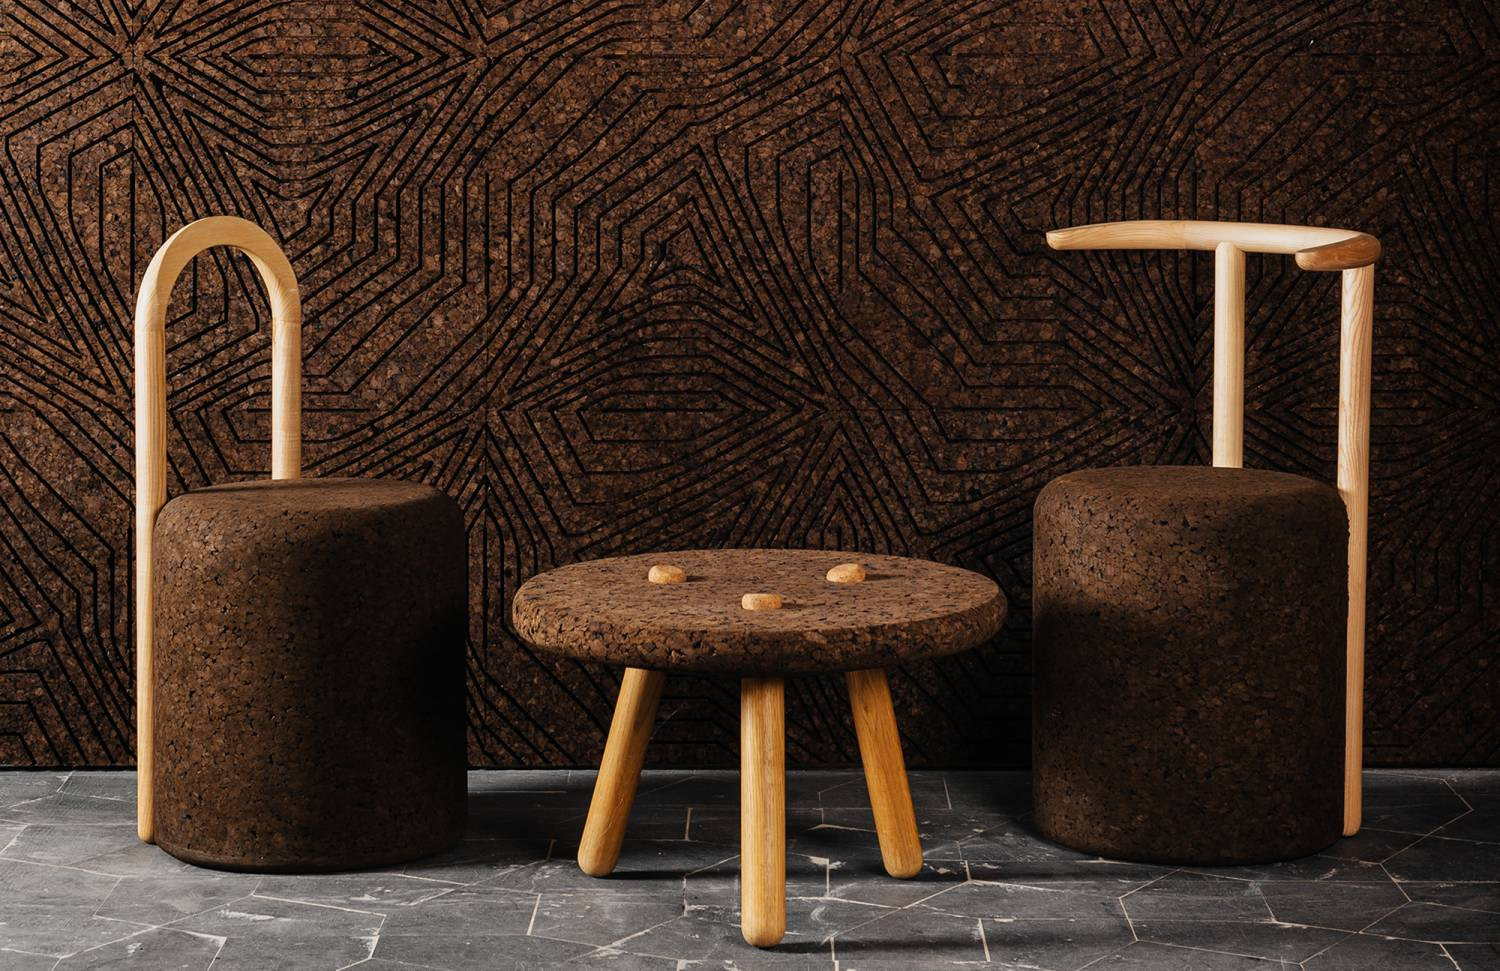 Cork covering solutions and furniture by Gencork - Flodeau.com